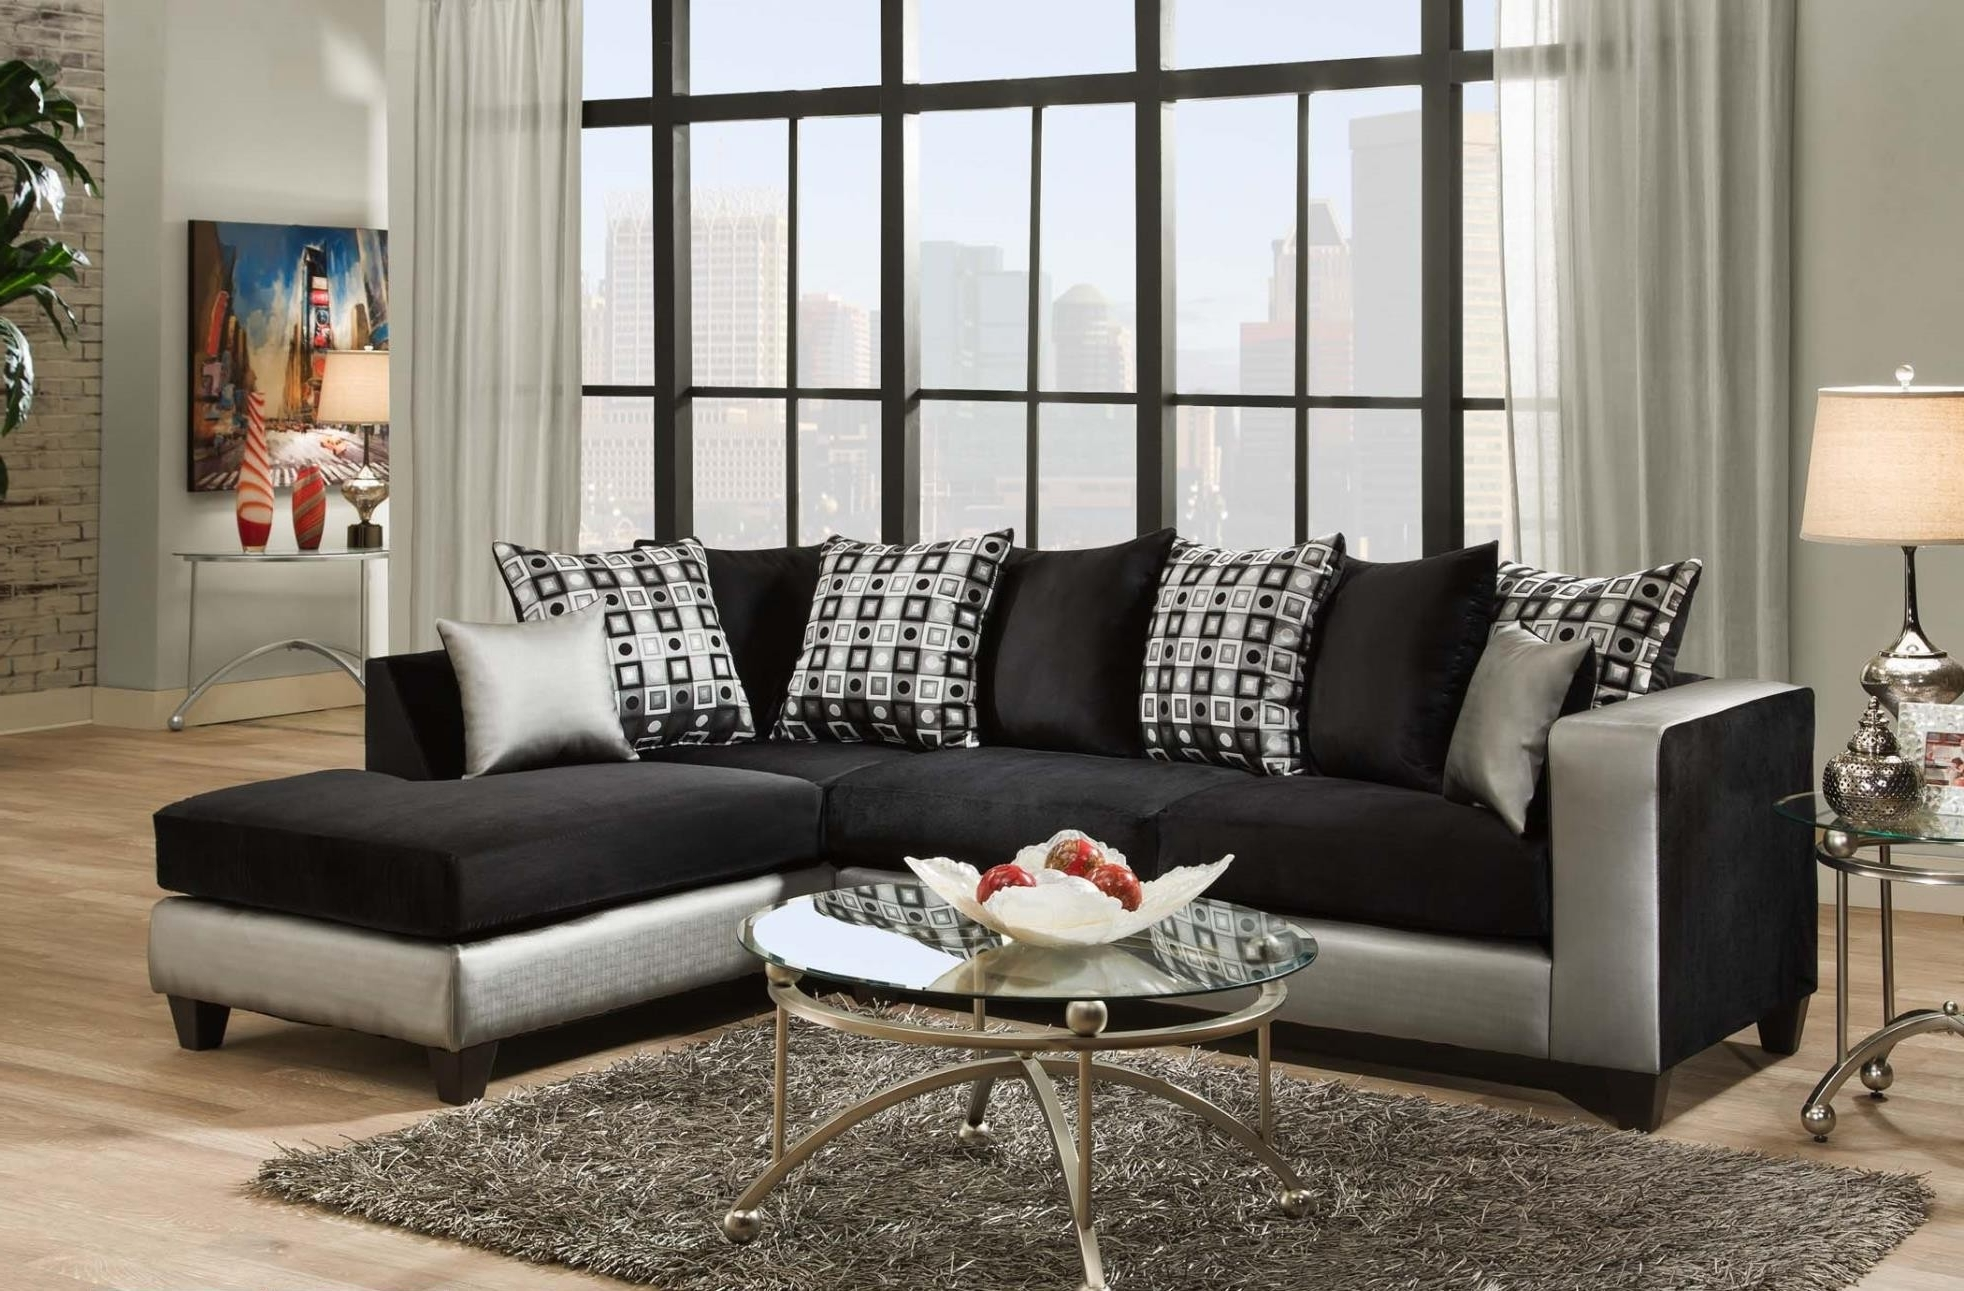 Well Liked Lovely Sectional Sofa Phoenix – Buildsimplehome Throughout Phoenix Sectional Sofas (View 2 of 20)